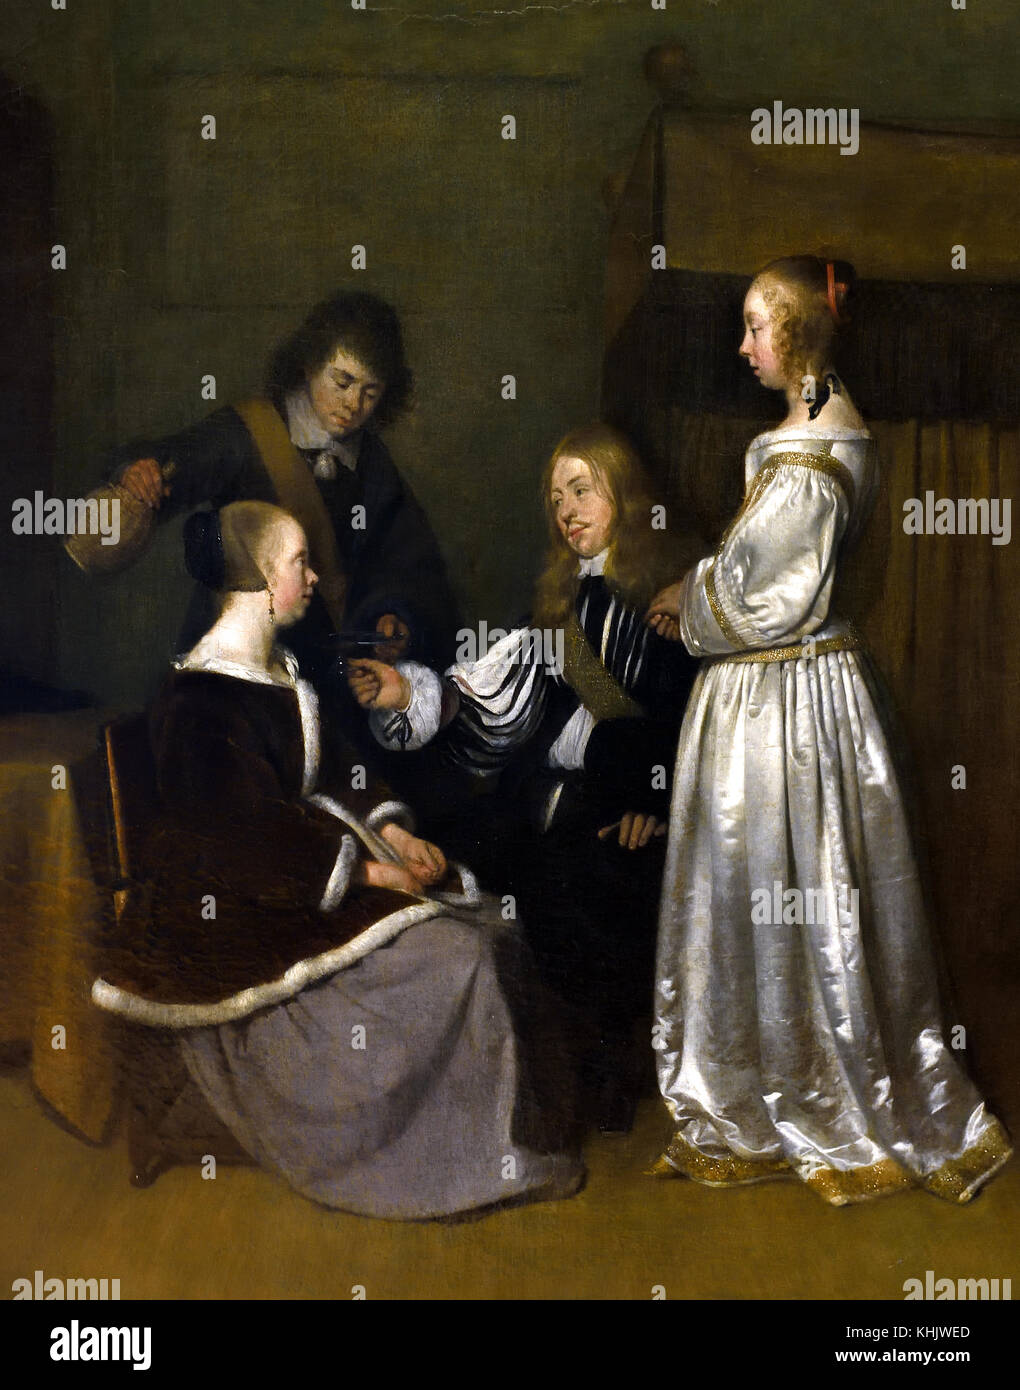 Gallant conservation 1652 Gerard ter Borch 1617-1681 Dutch The Netherlands - Stock Image